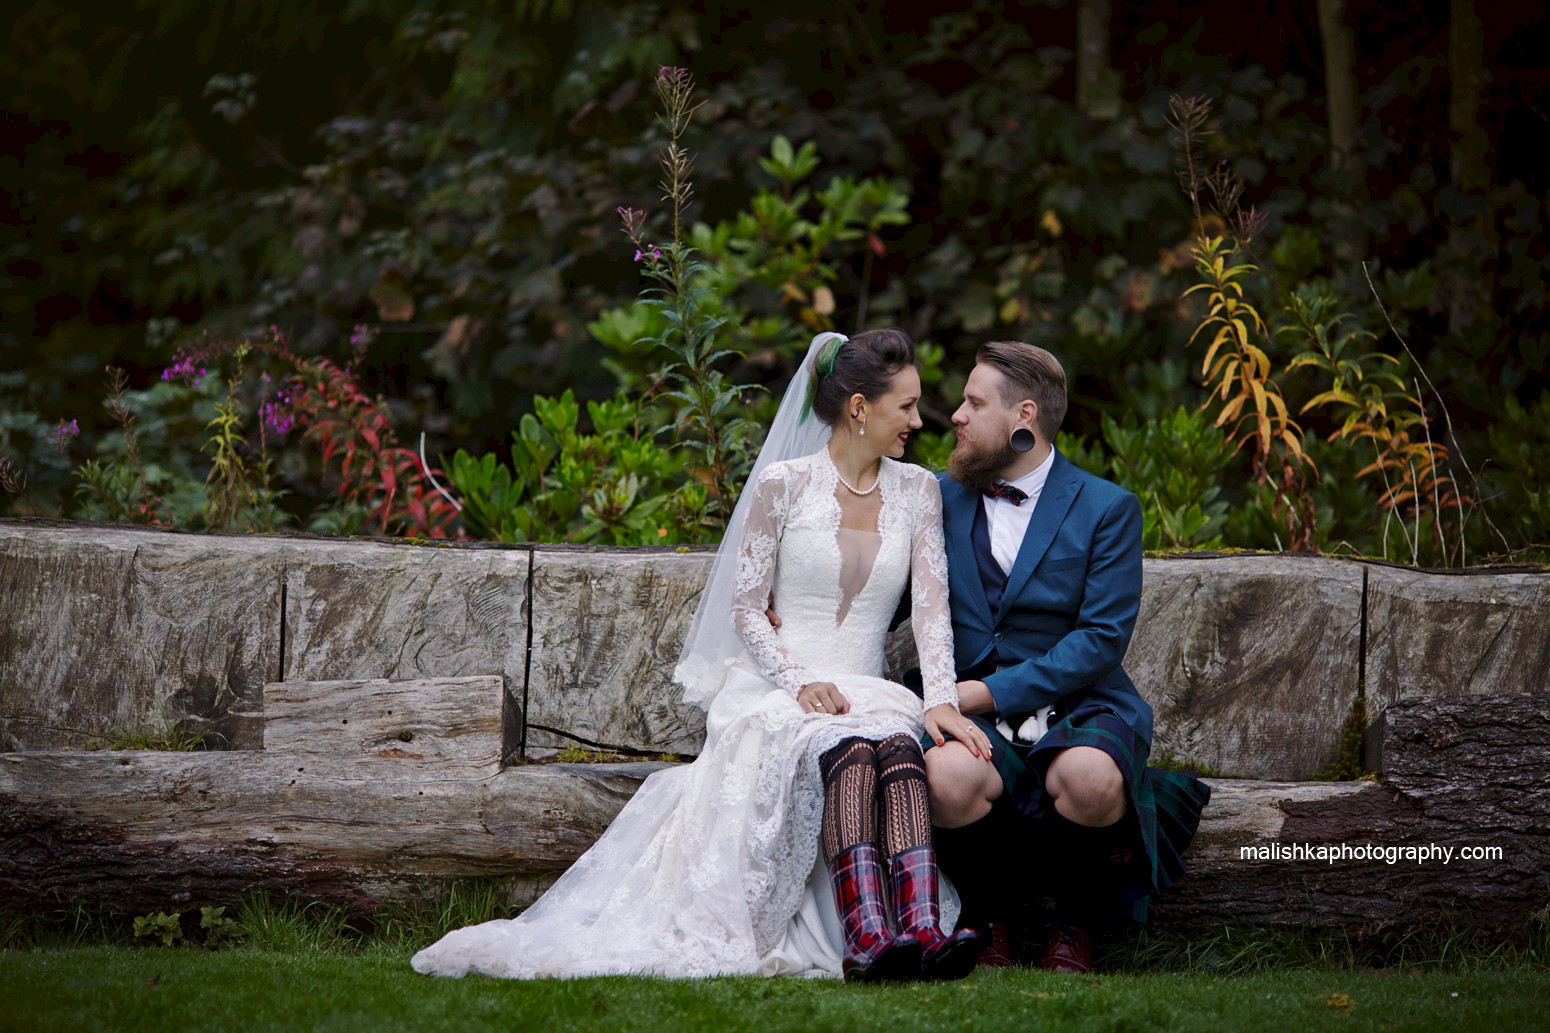 Dalhousie Castle grounds and bride and groom